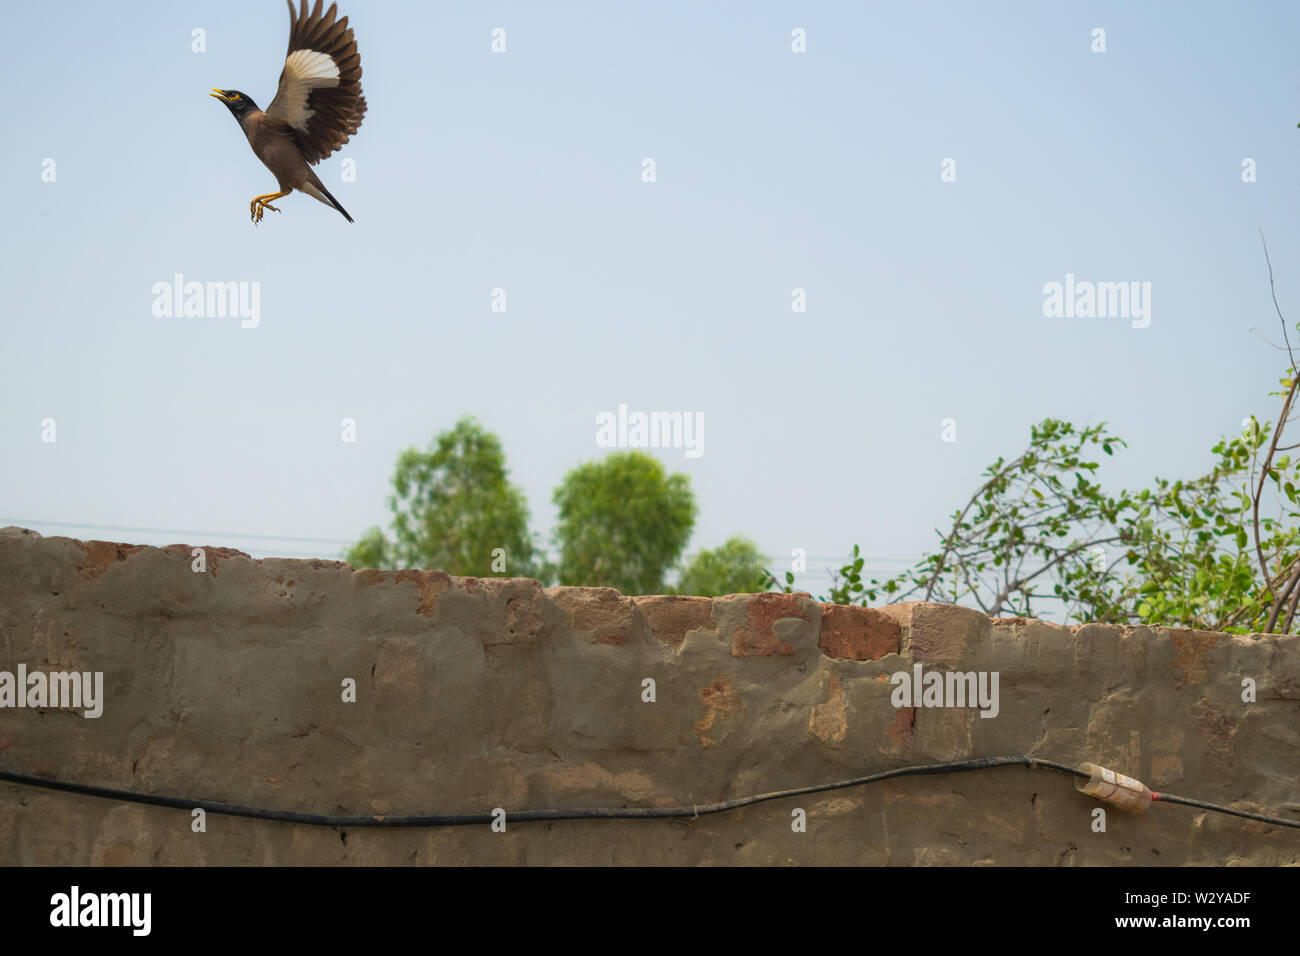 a starling flying in the air with blue sky background.flight of starling in the sky. Stock Photo